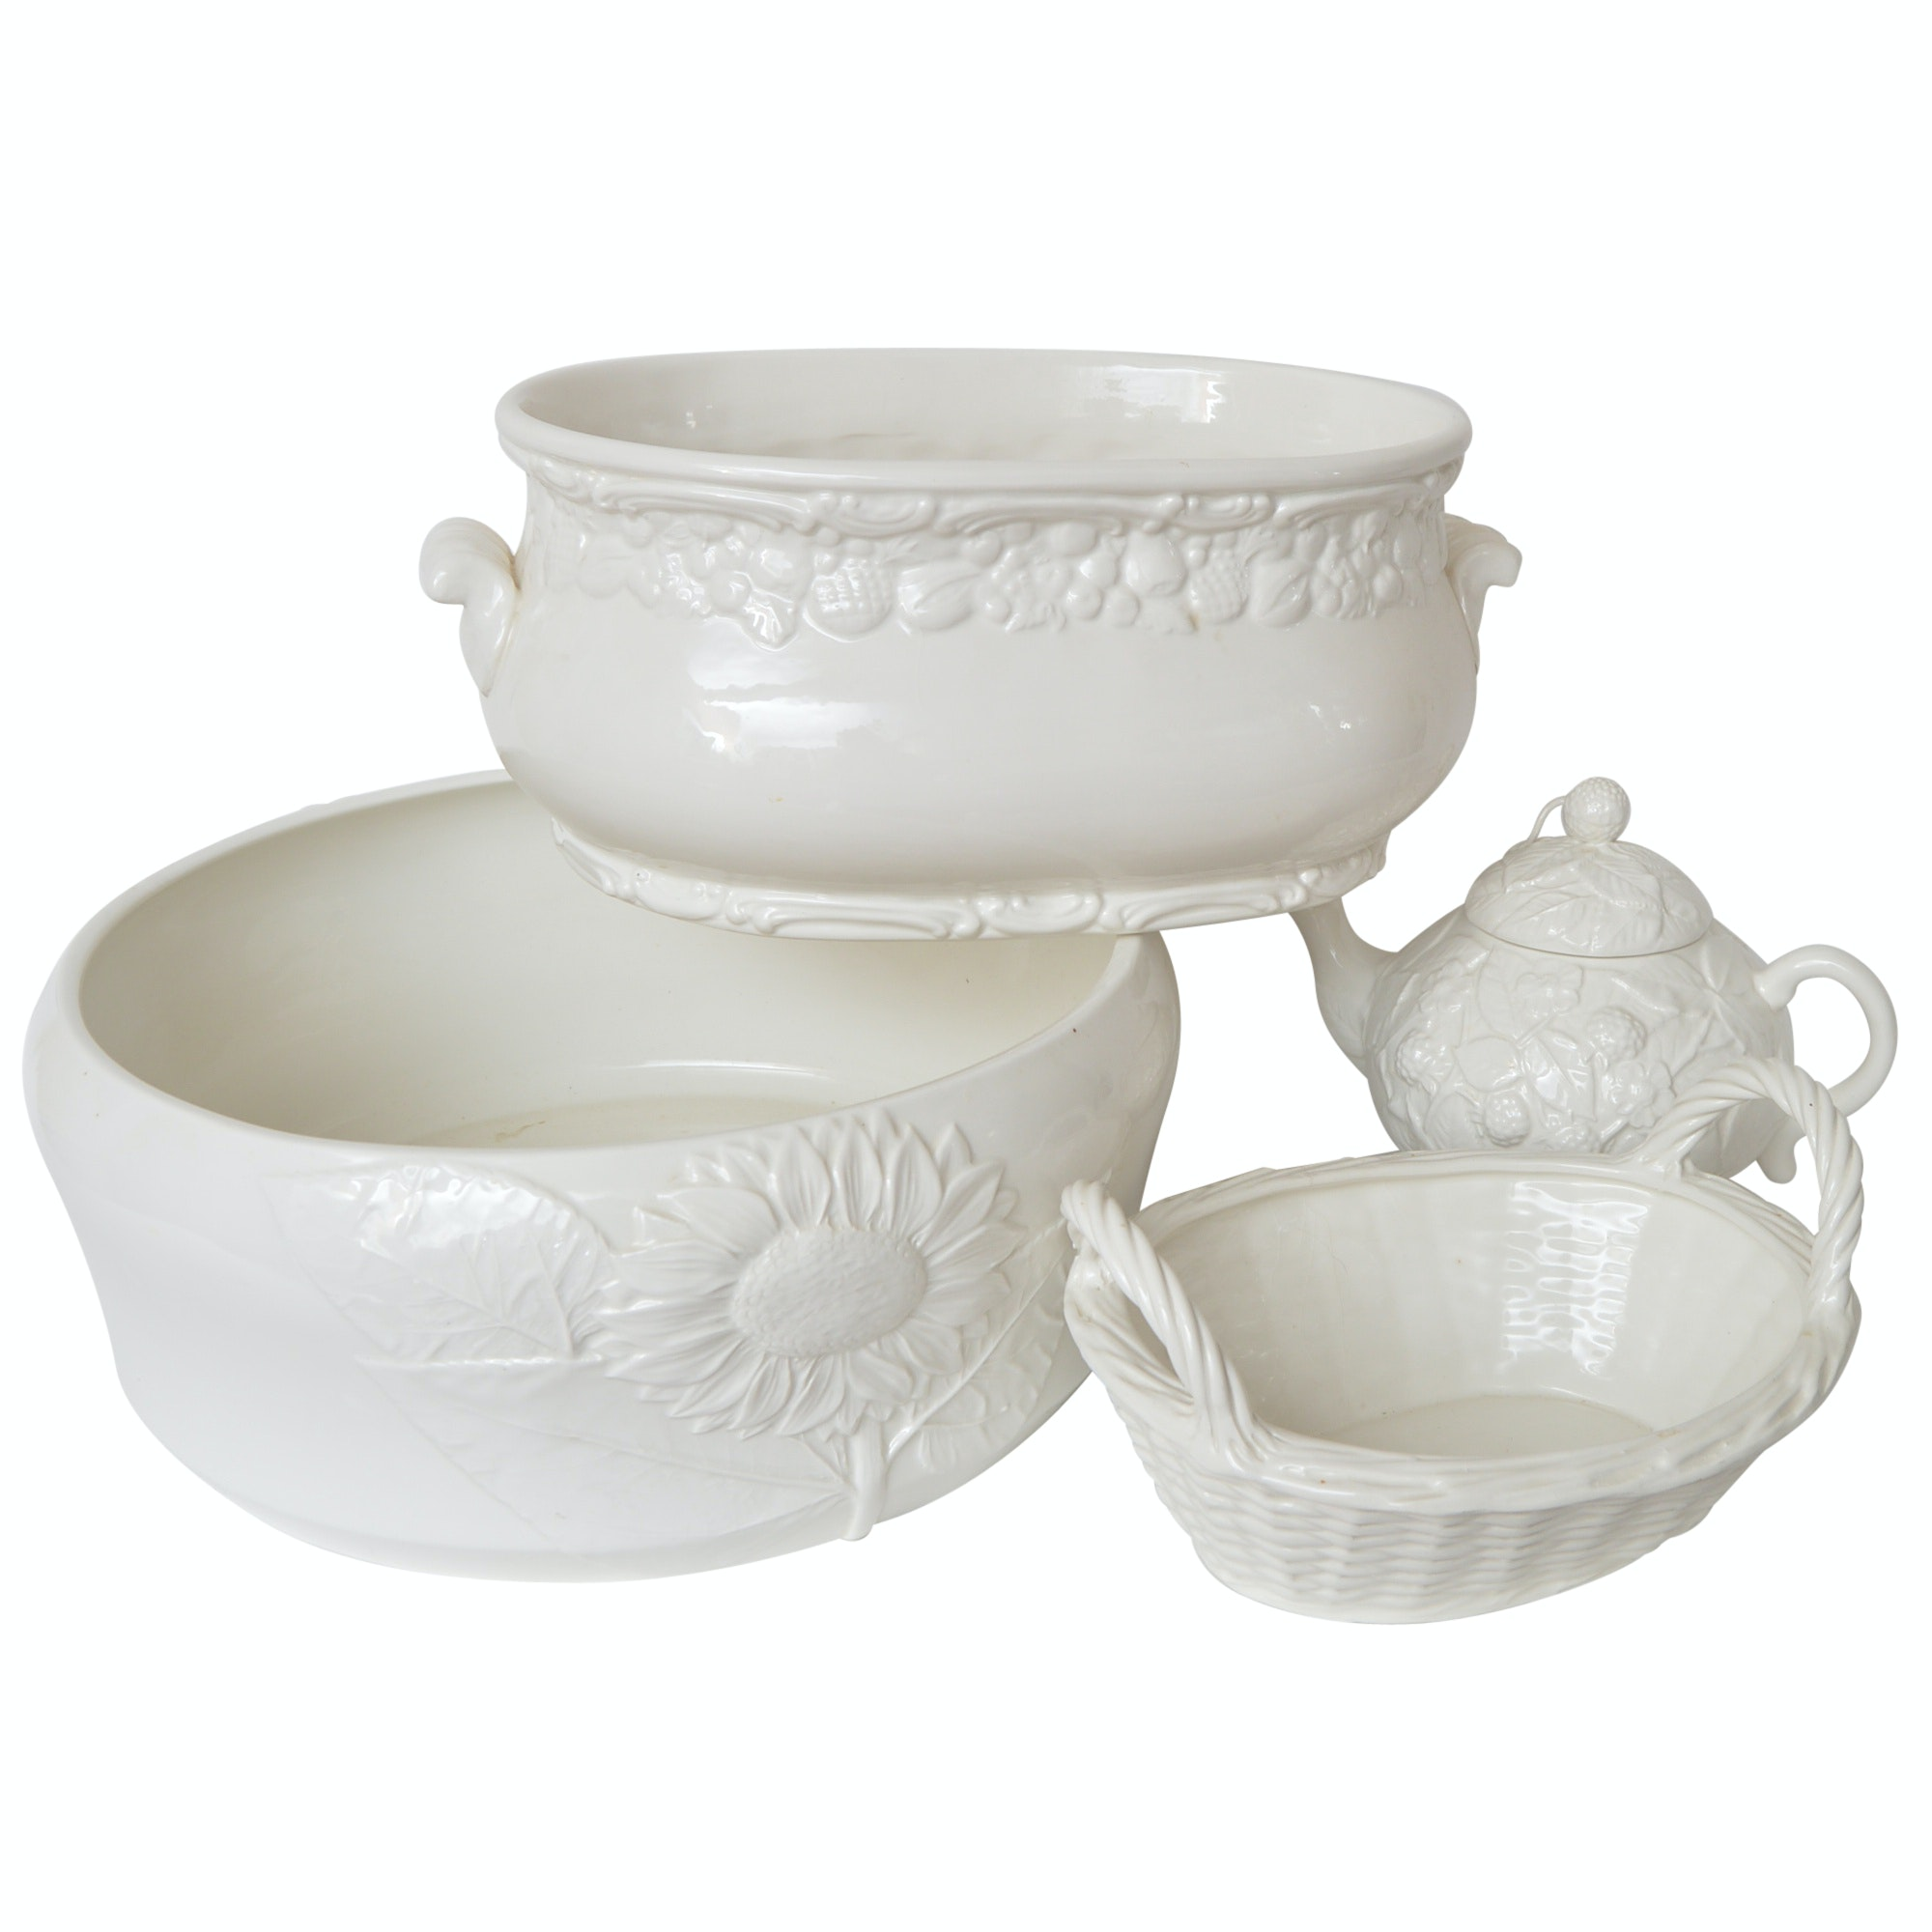 Italian Ceramic Pottery with Bowls and Teapot